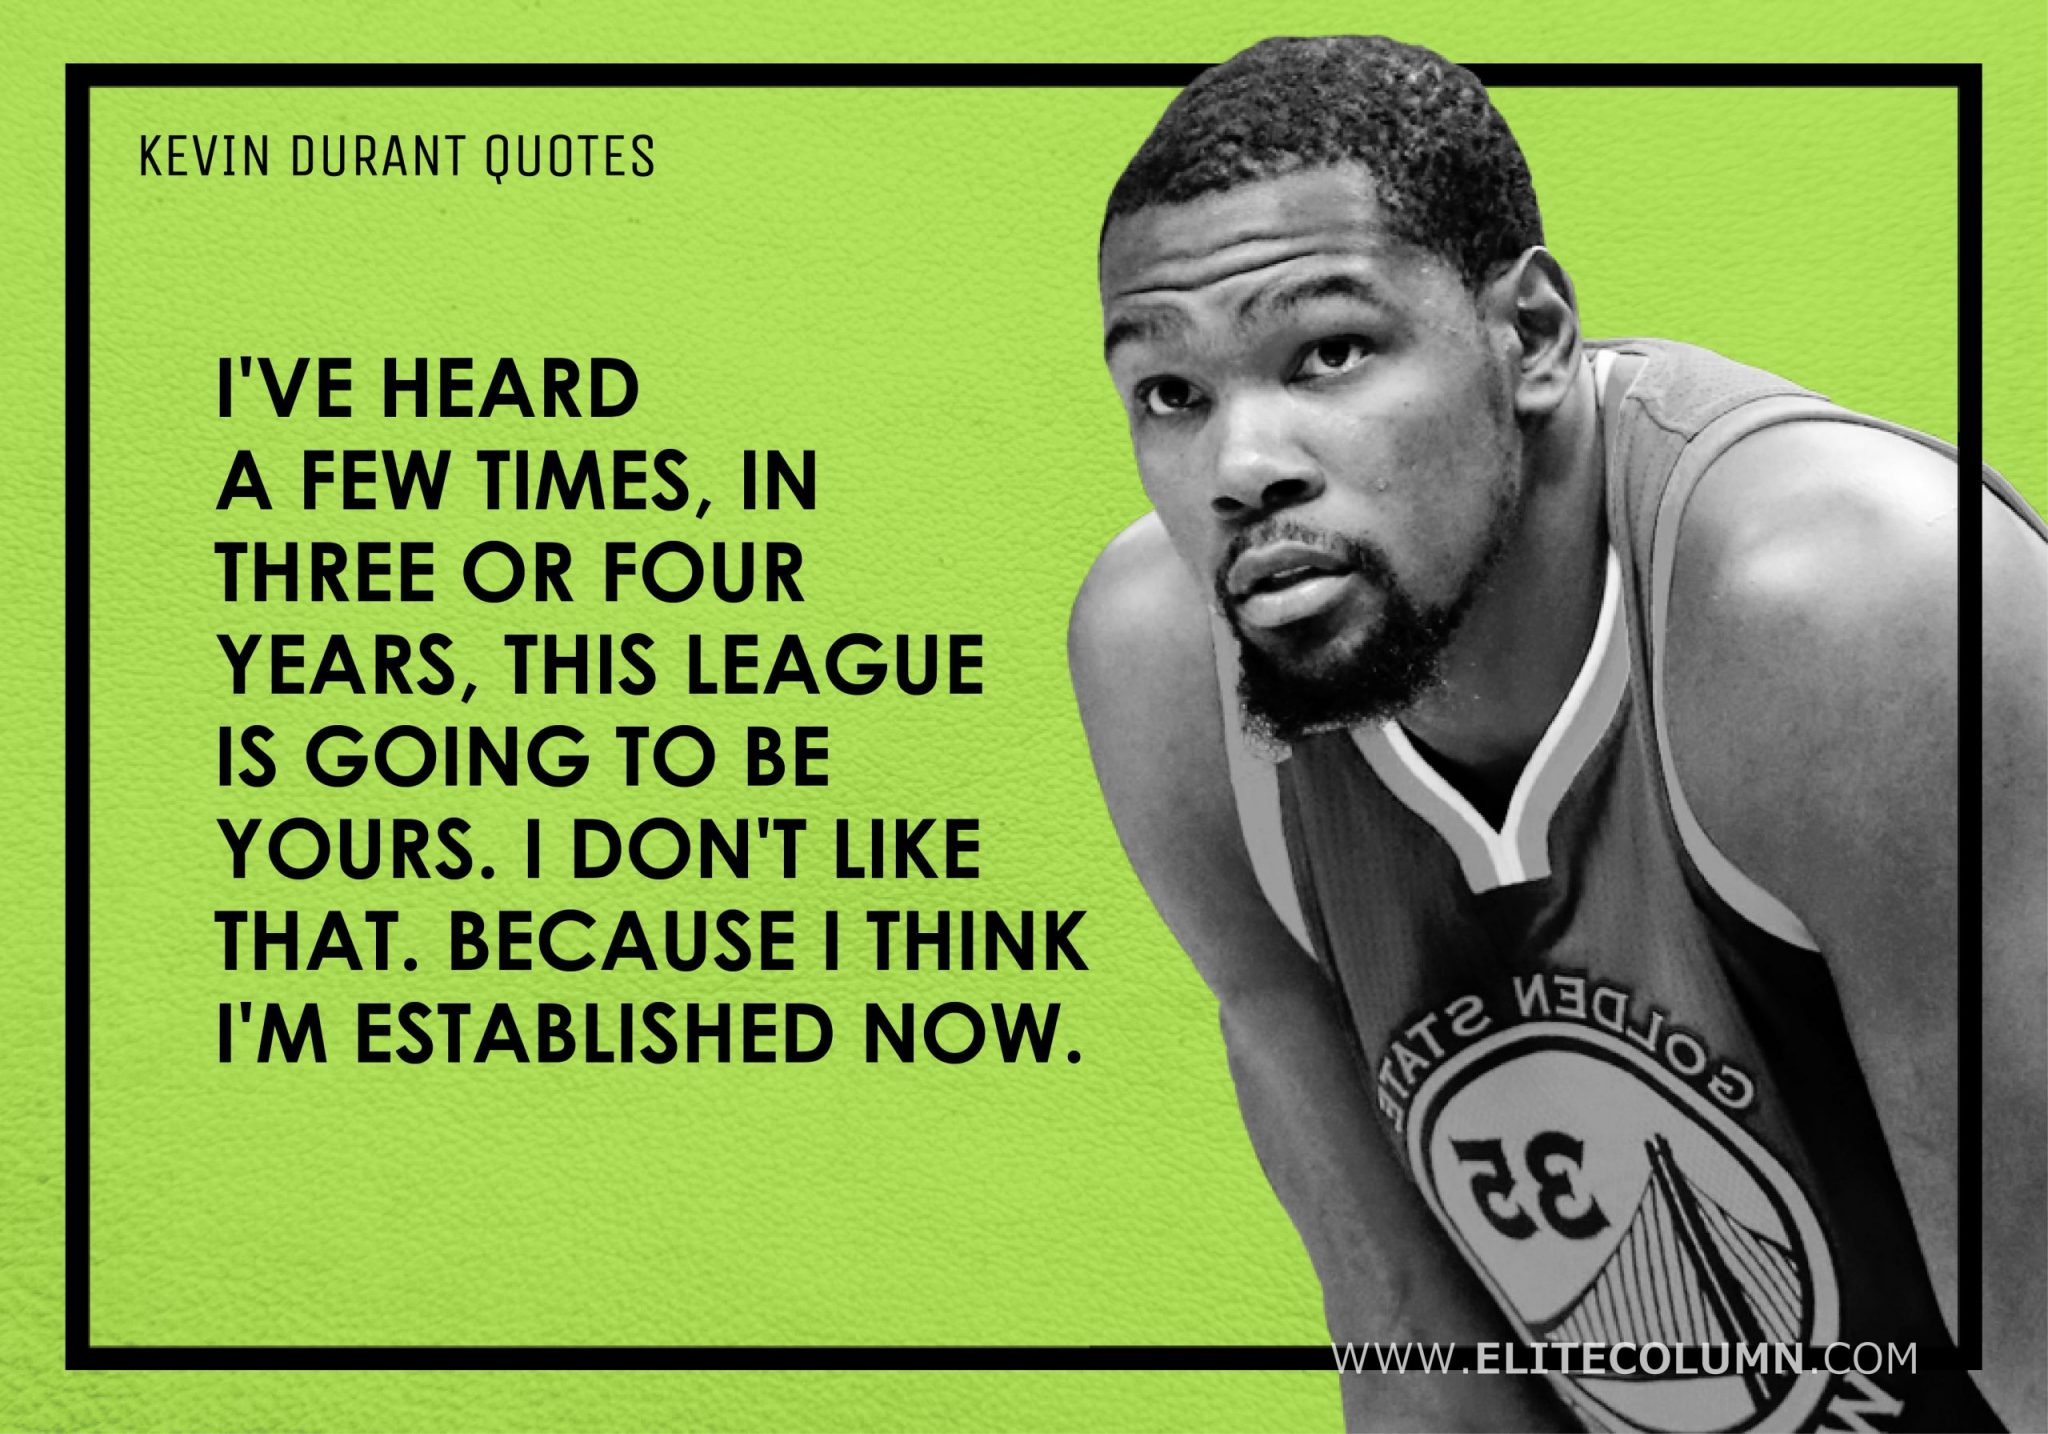 Kevin Durant Quotes (4)